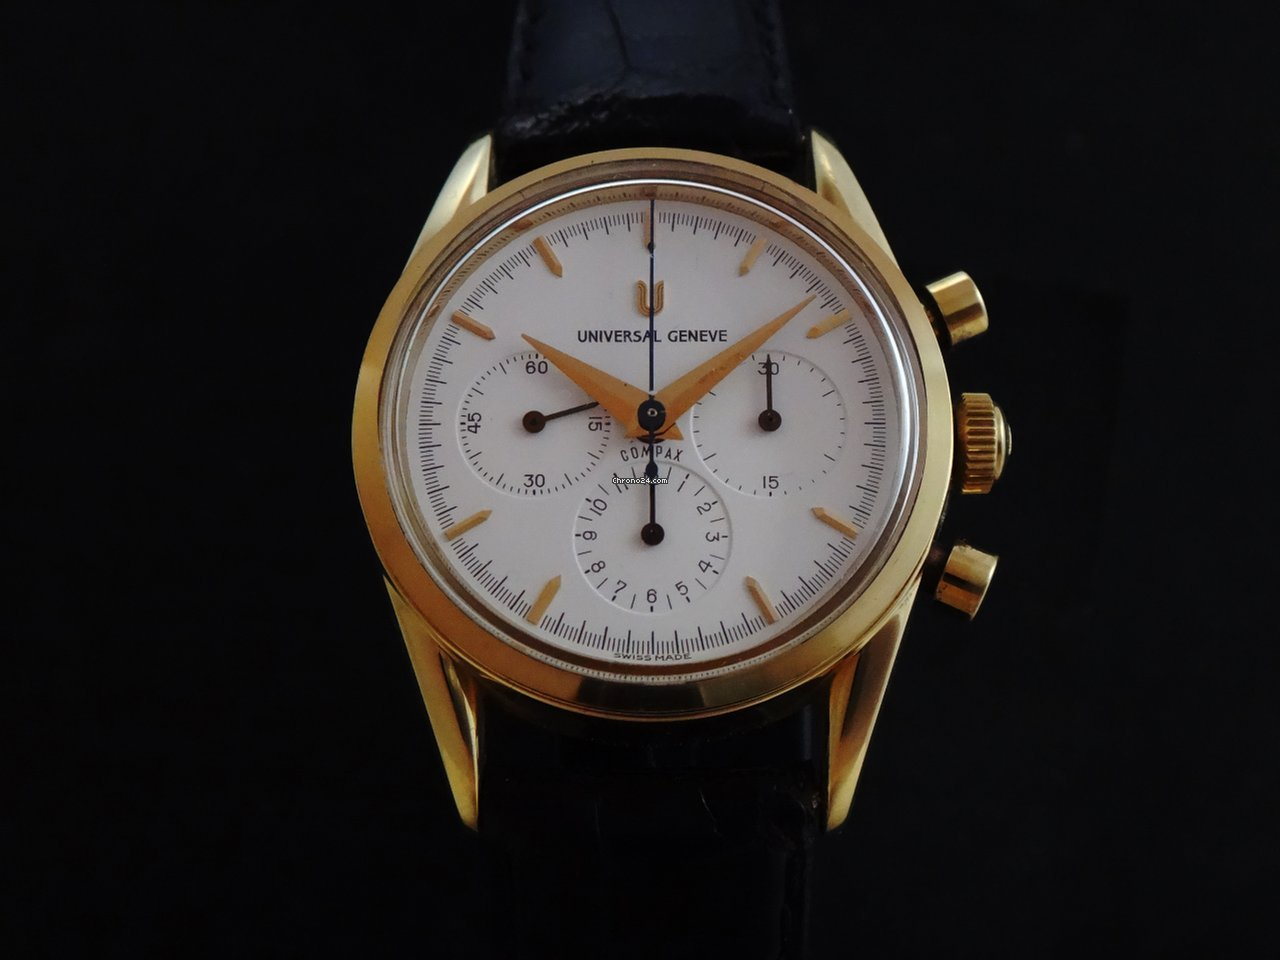 Universal Genève Compax 184.440 1995 pre-owned